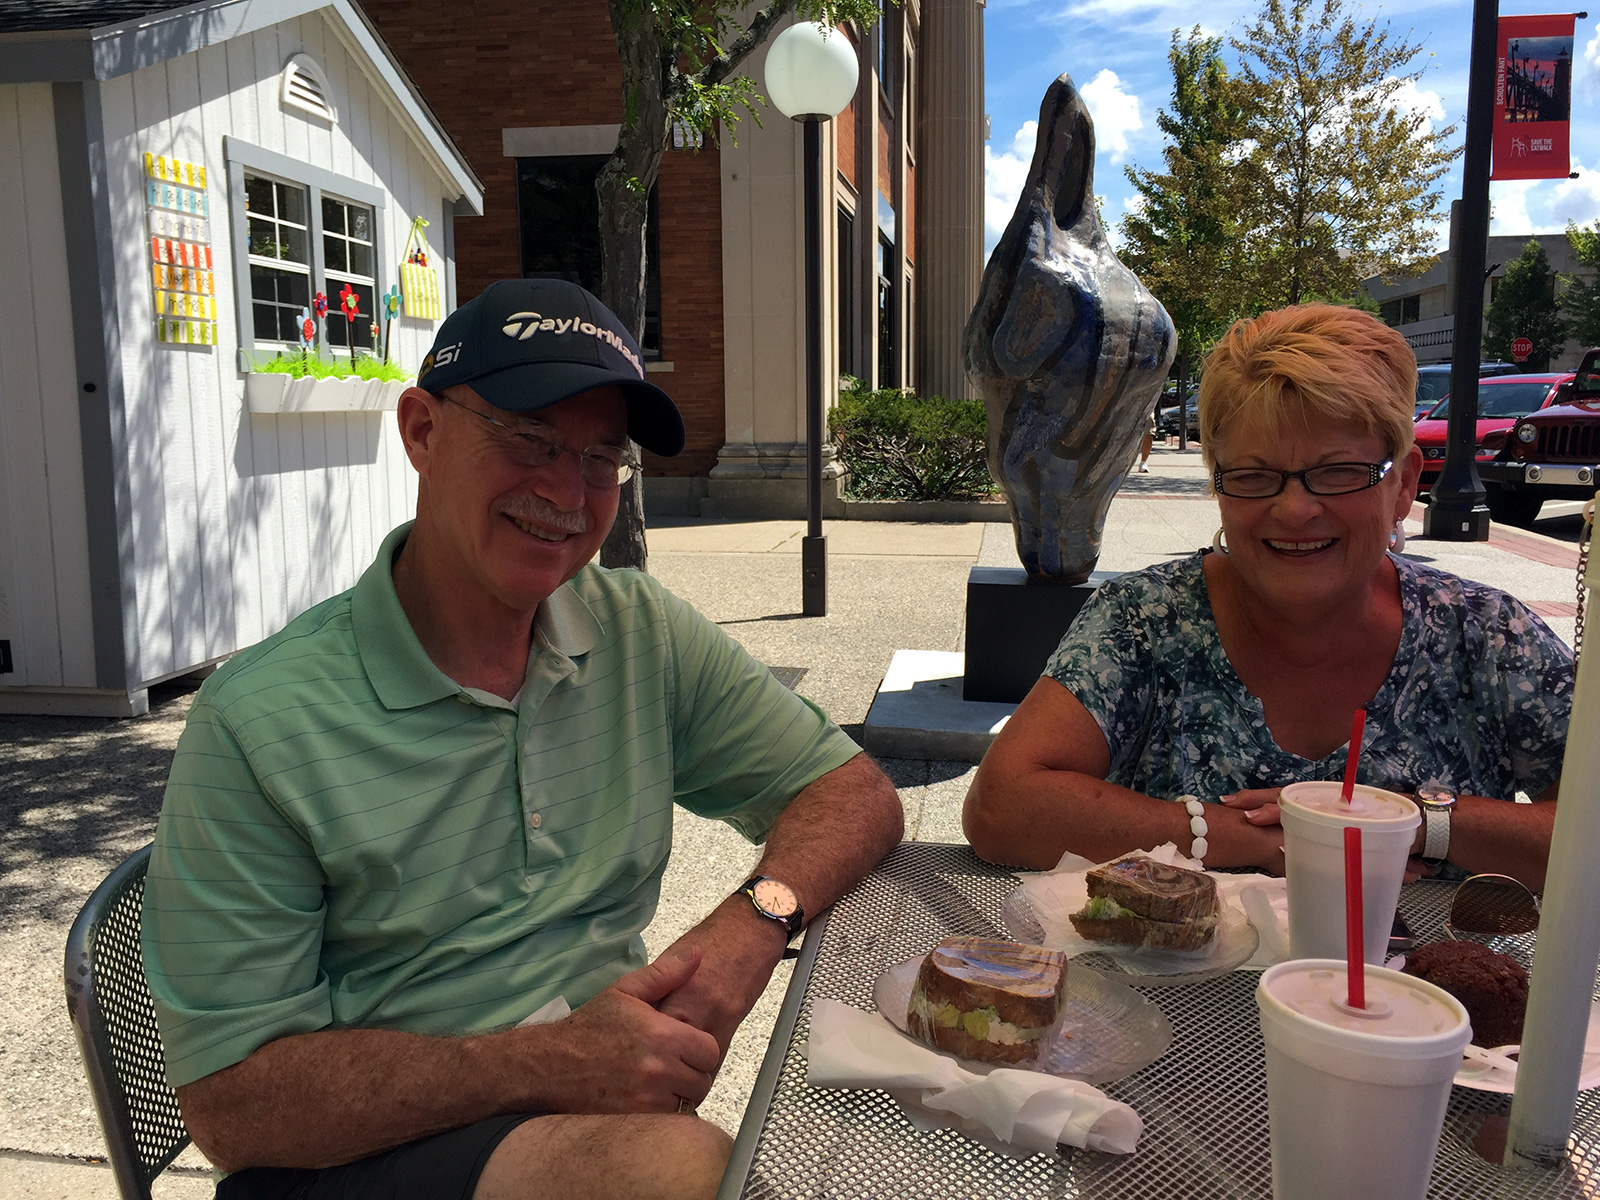 Jumpin' Java in Grand Haven, Michigan by Jets Like Taxis